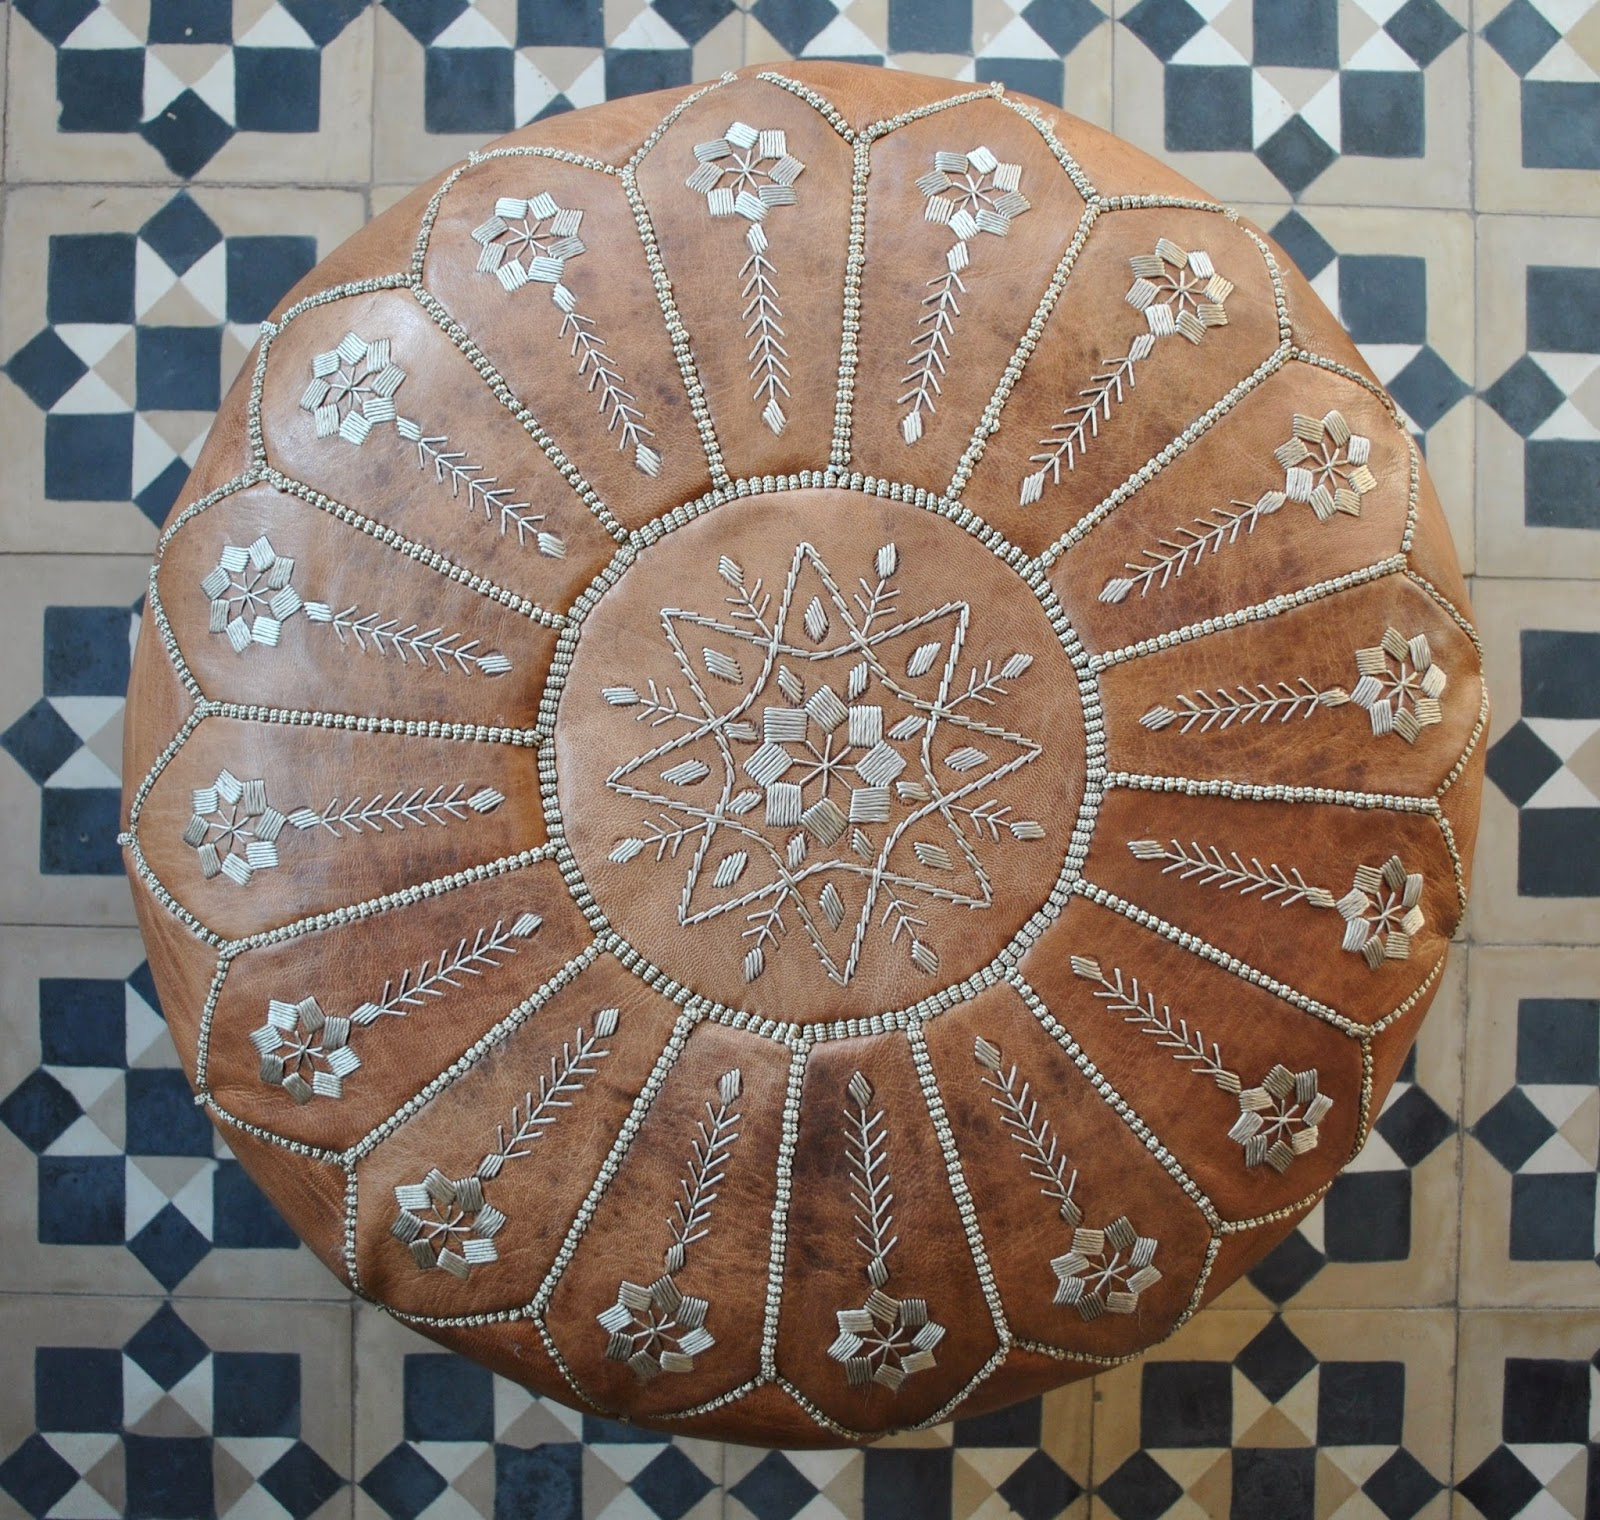 beyond marrakech moroccan leather pouffes - mlp moroccan leather pouffe vintage style with beautiful intricateembroidery measures approx  x  cm price €  or us